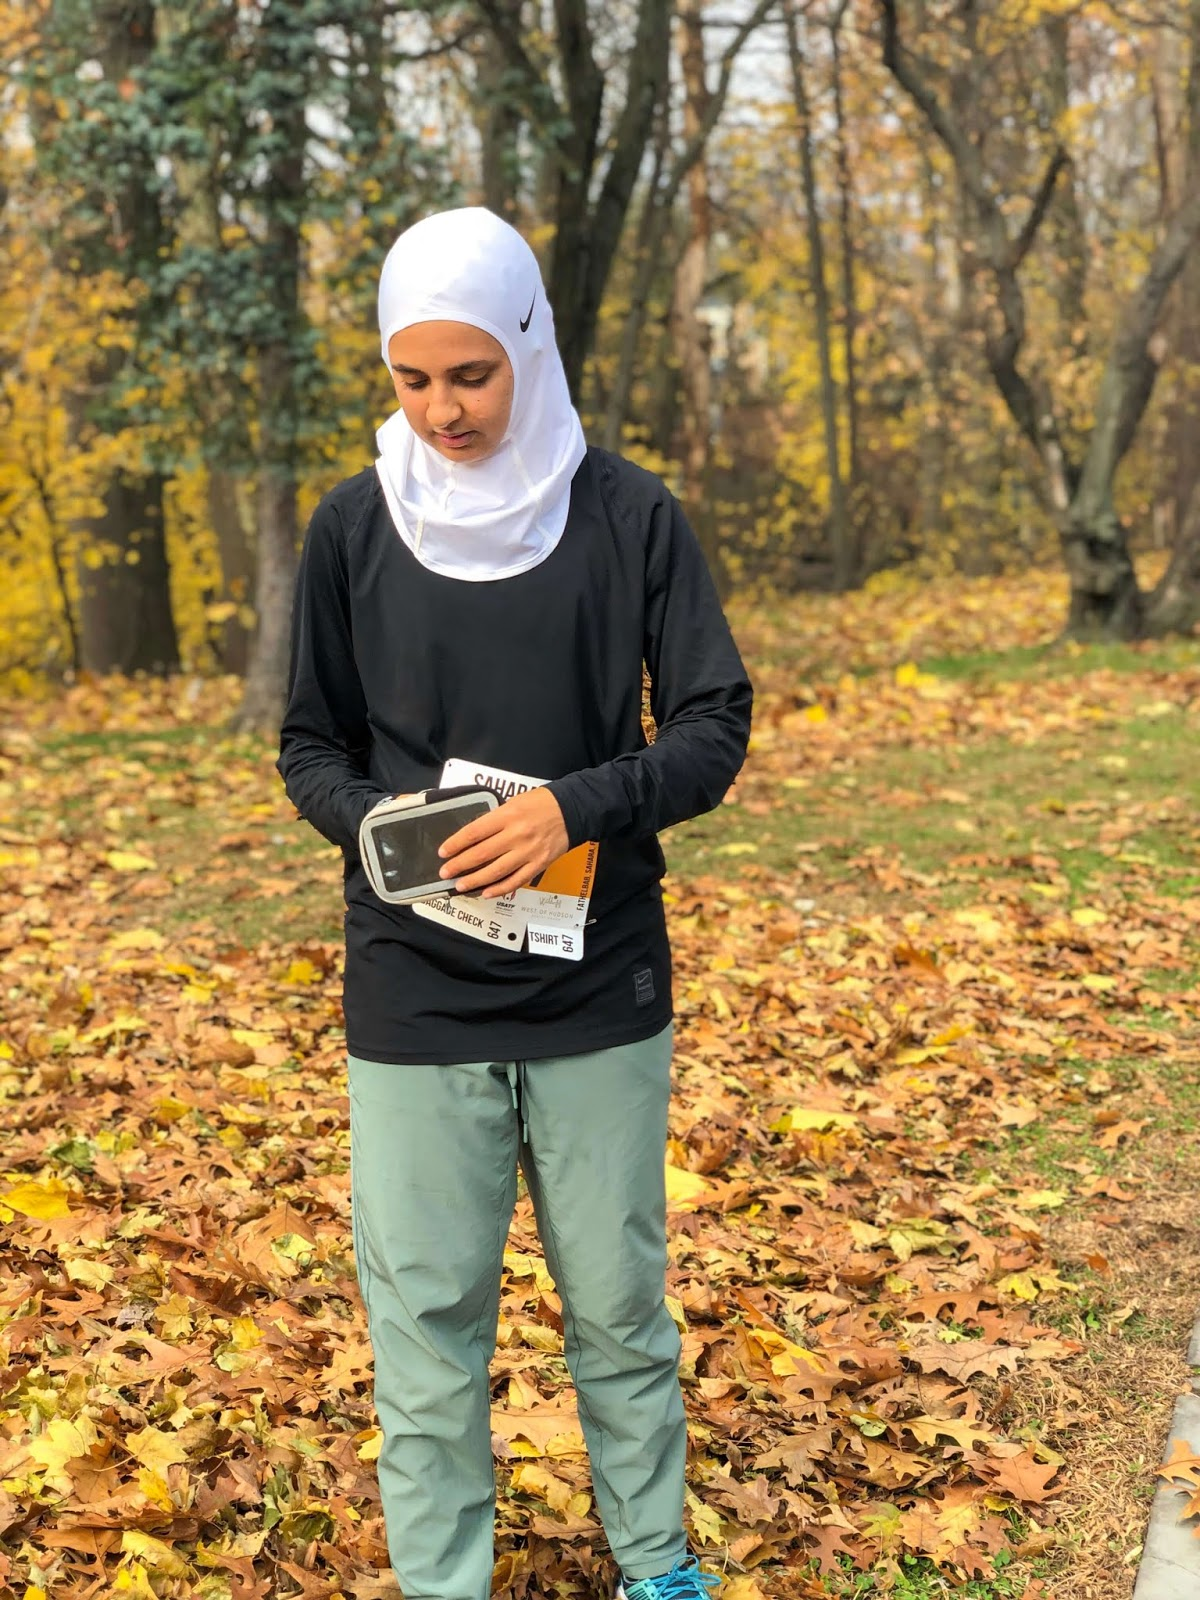 sahara with white nike hijab, black nike long sleeve and green running pants standing with her phone armband